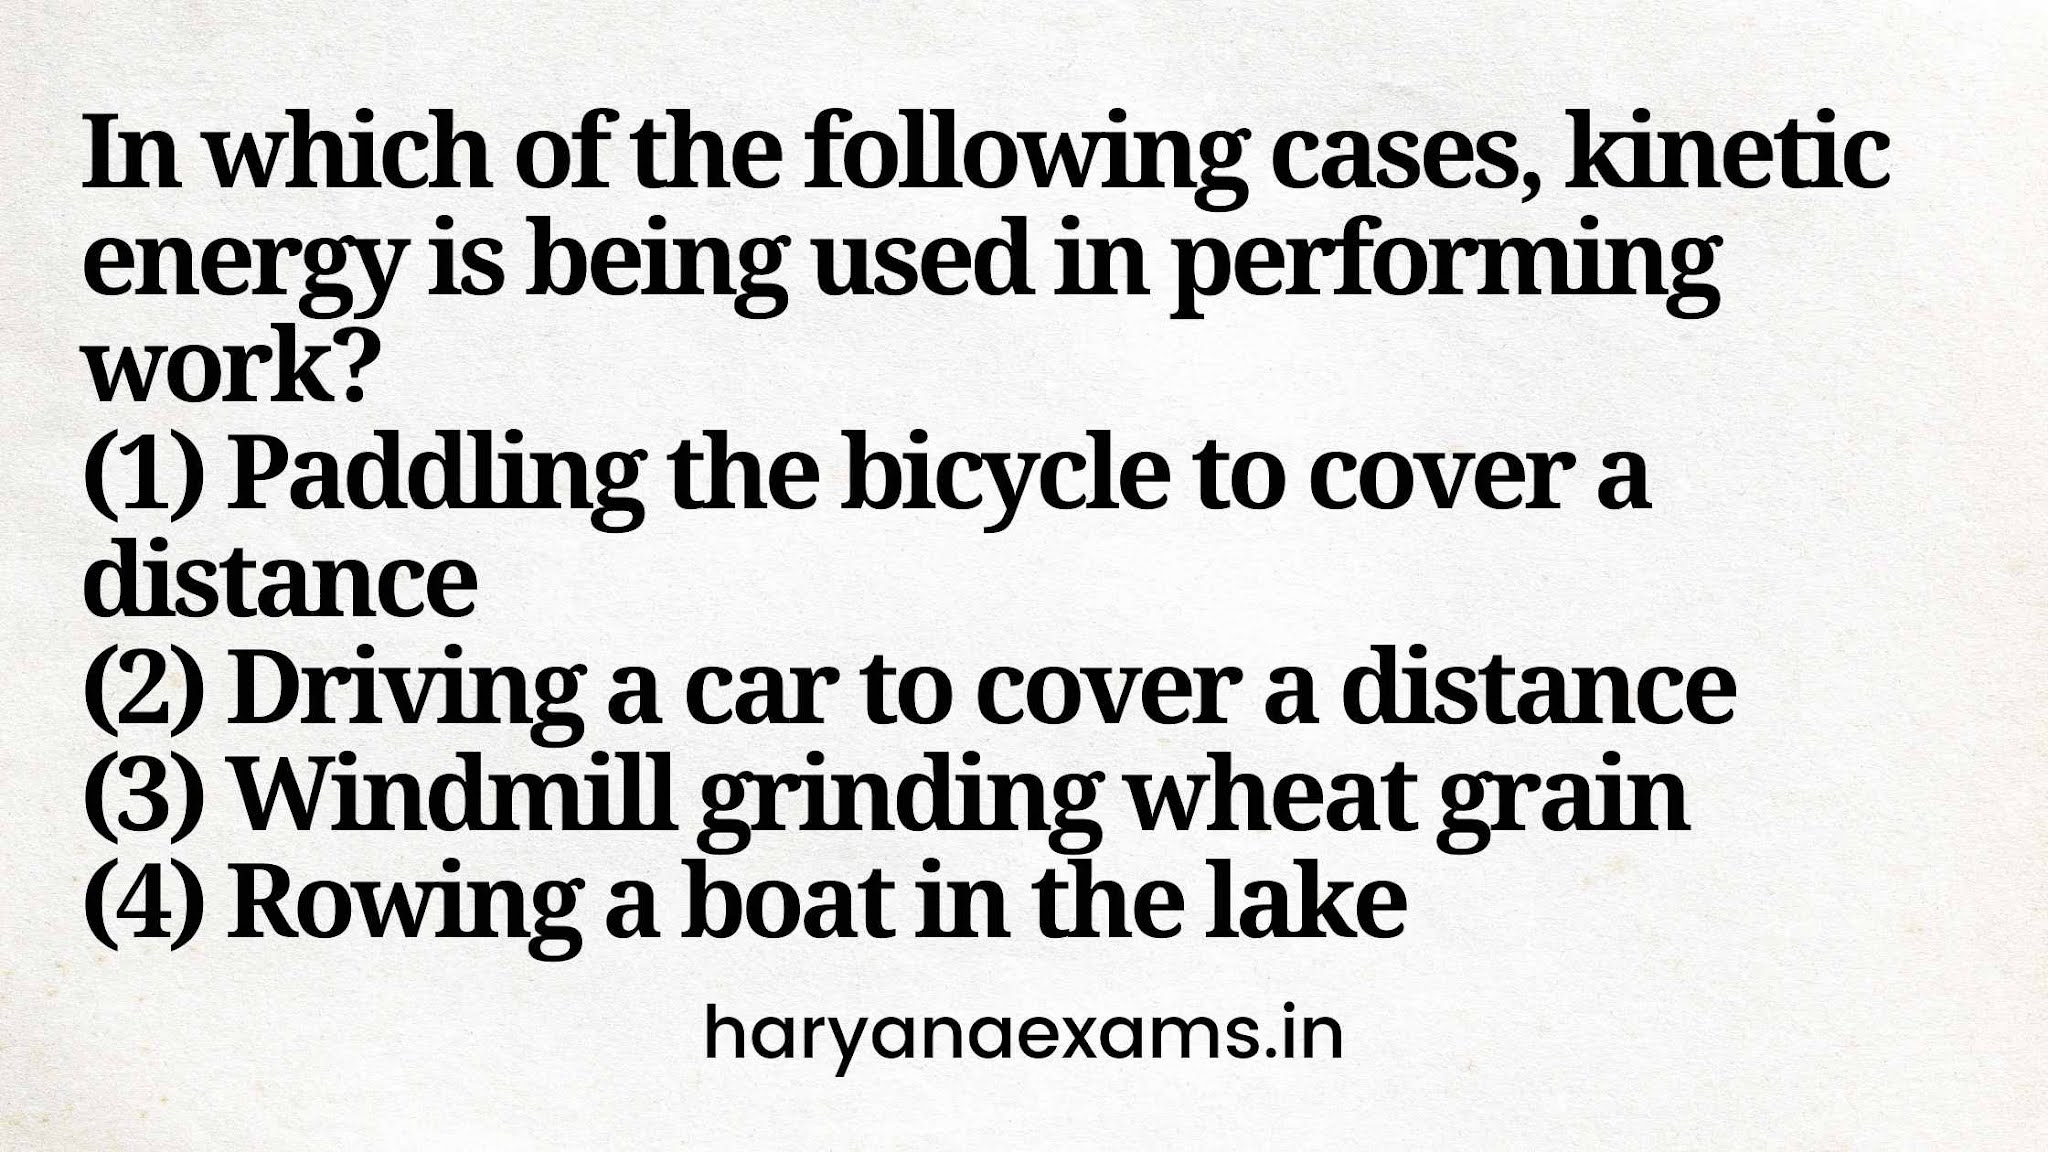 In which of the following cases, kinetic energy is being used in performing work?   (1) Paddling the bicycle to cover a distance   (2) Driving a car to cover a distance   (3) Windmill grinding wheat grain   (4) Rowing a boat in the lake